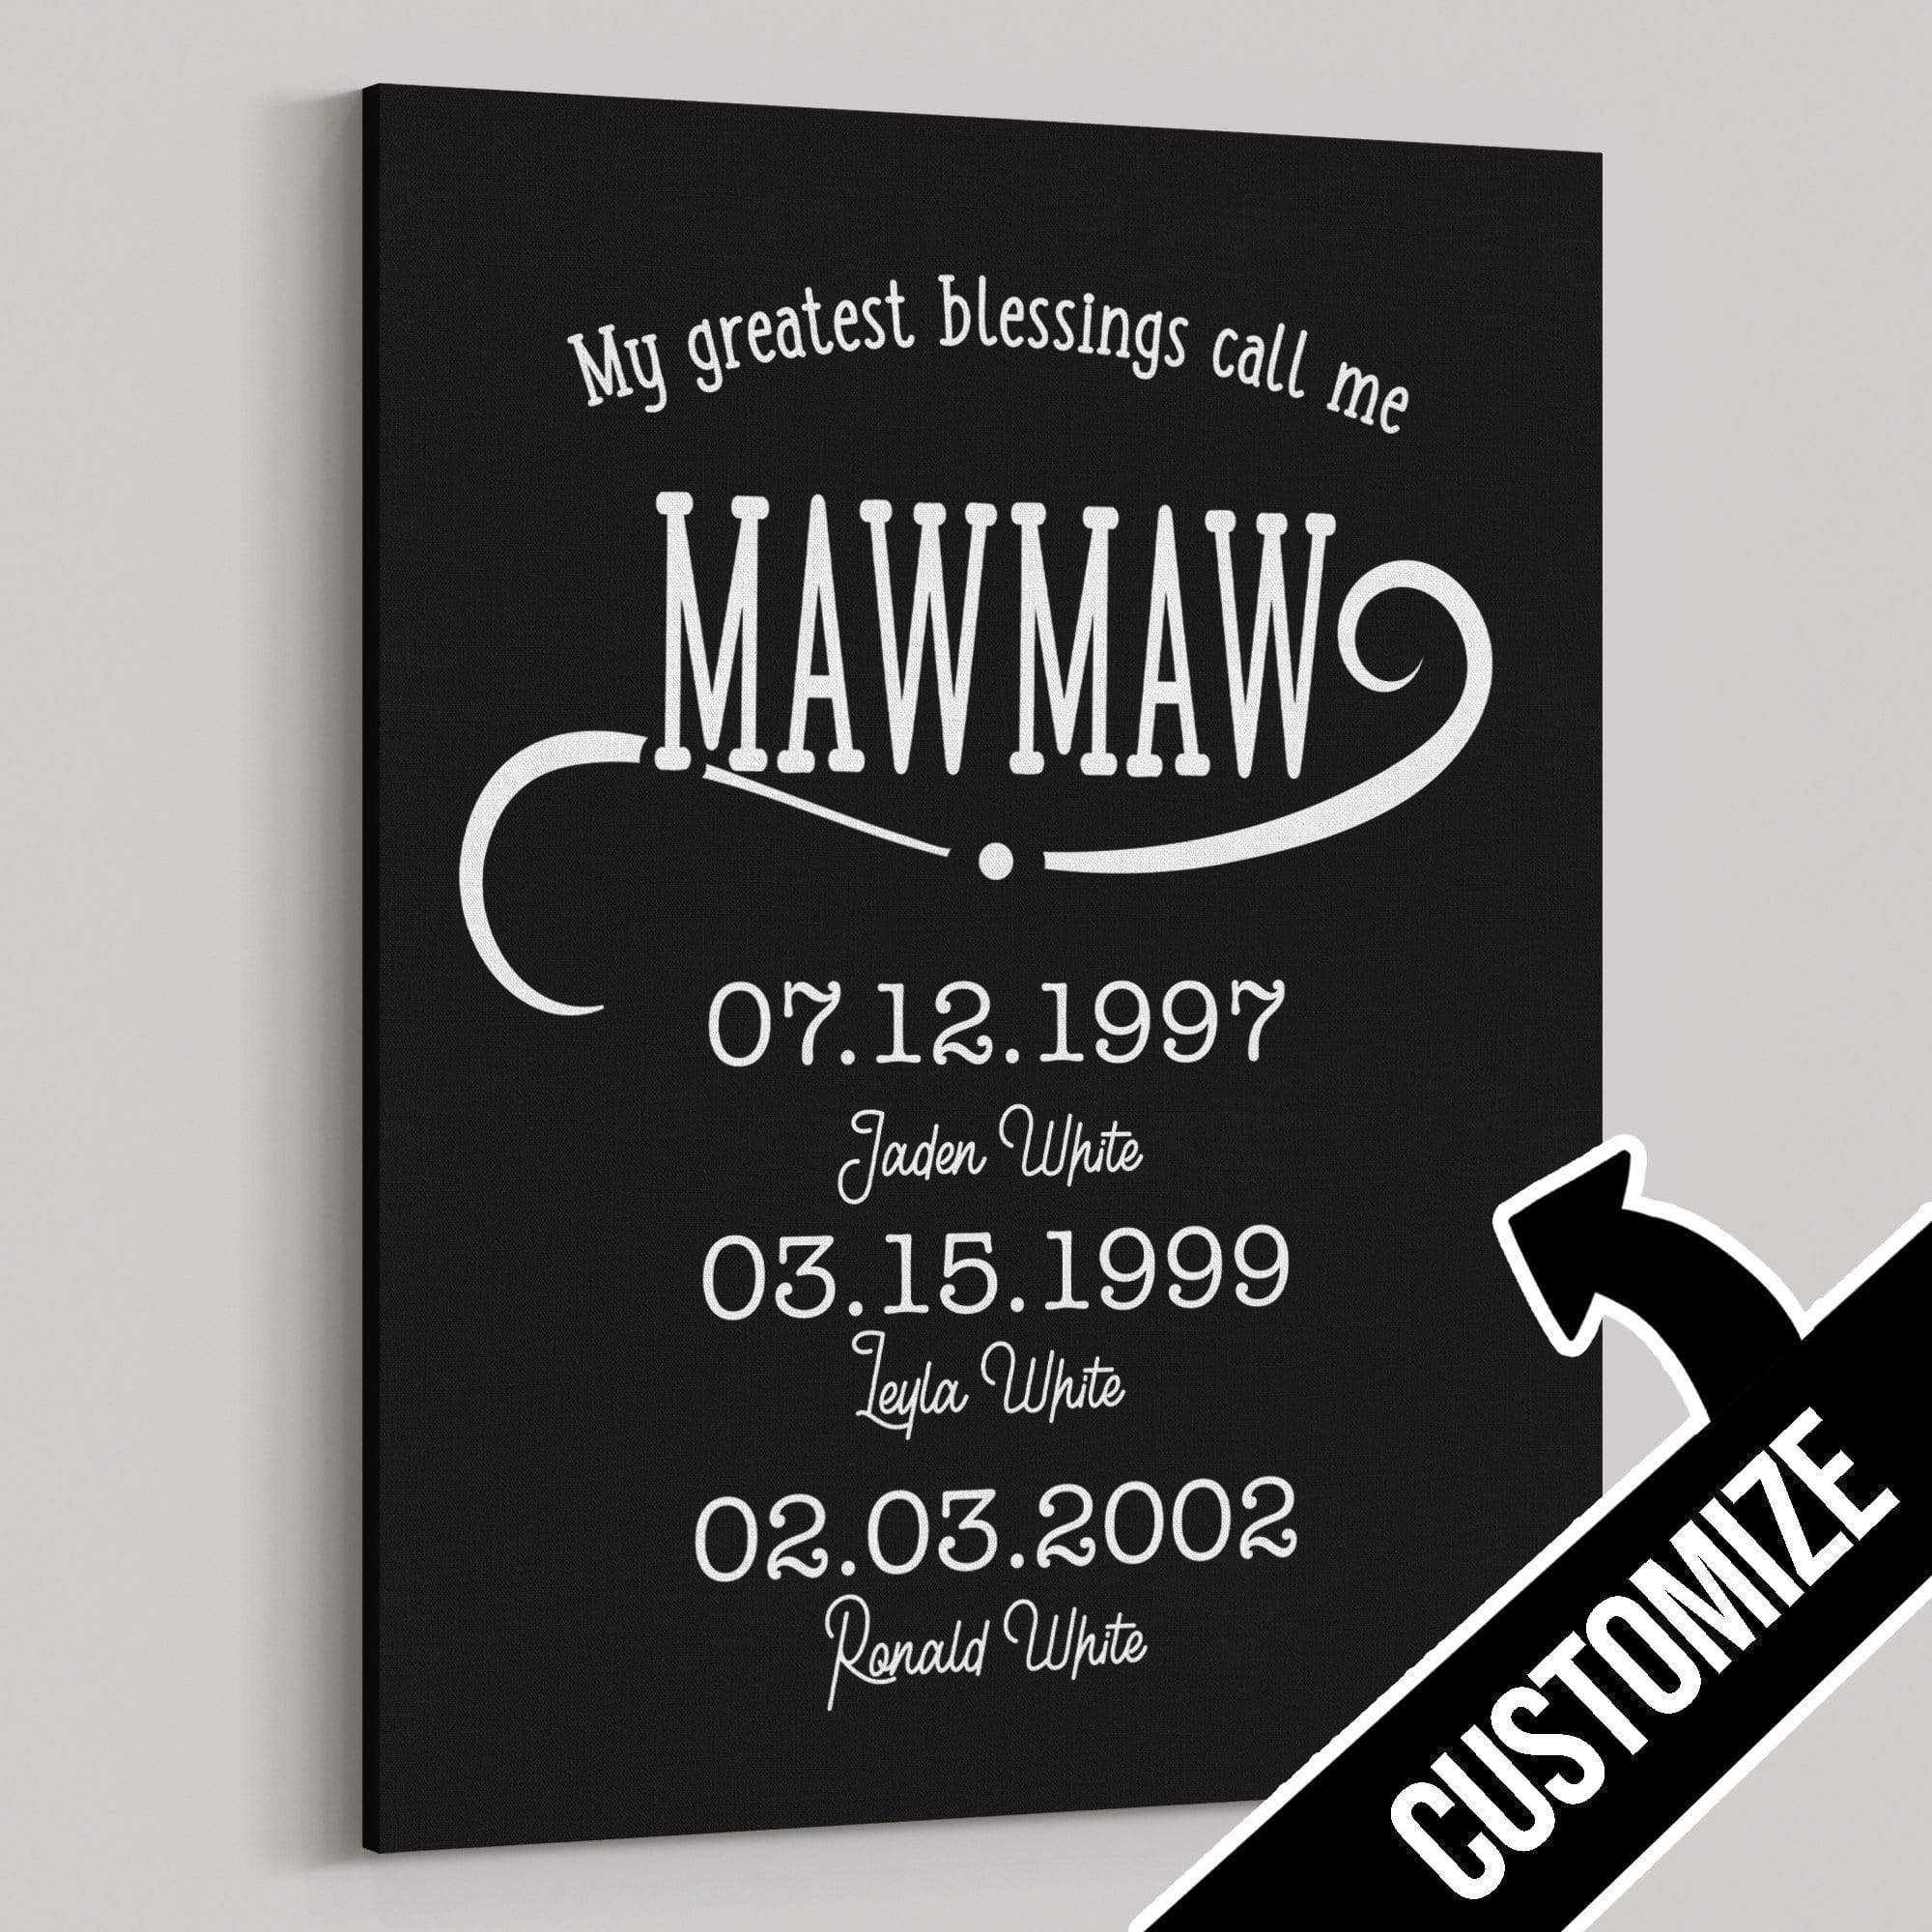 My Greatest Blessings Call Me Mawmaw Personalized Canvas - Canvas Zone